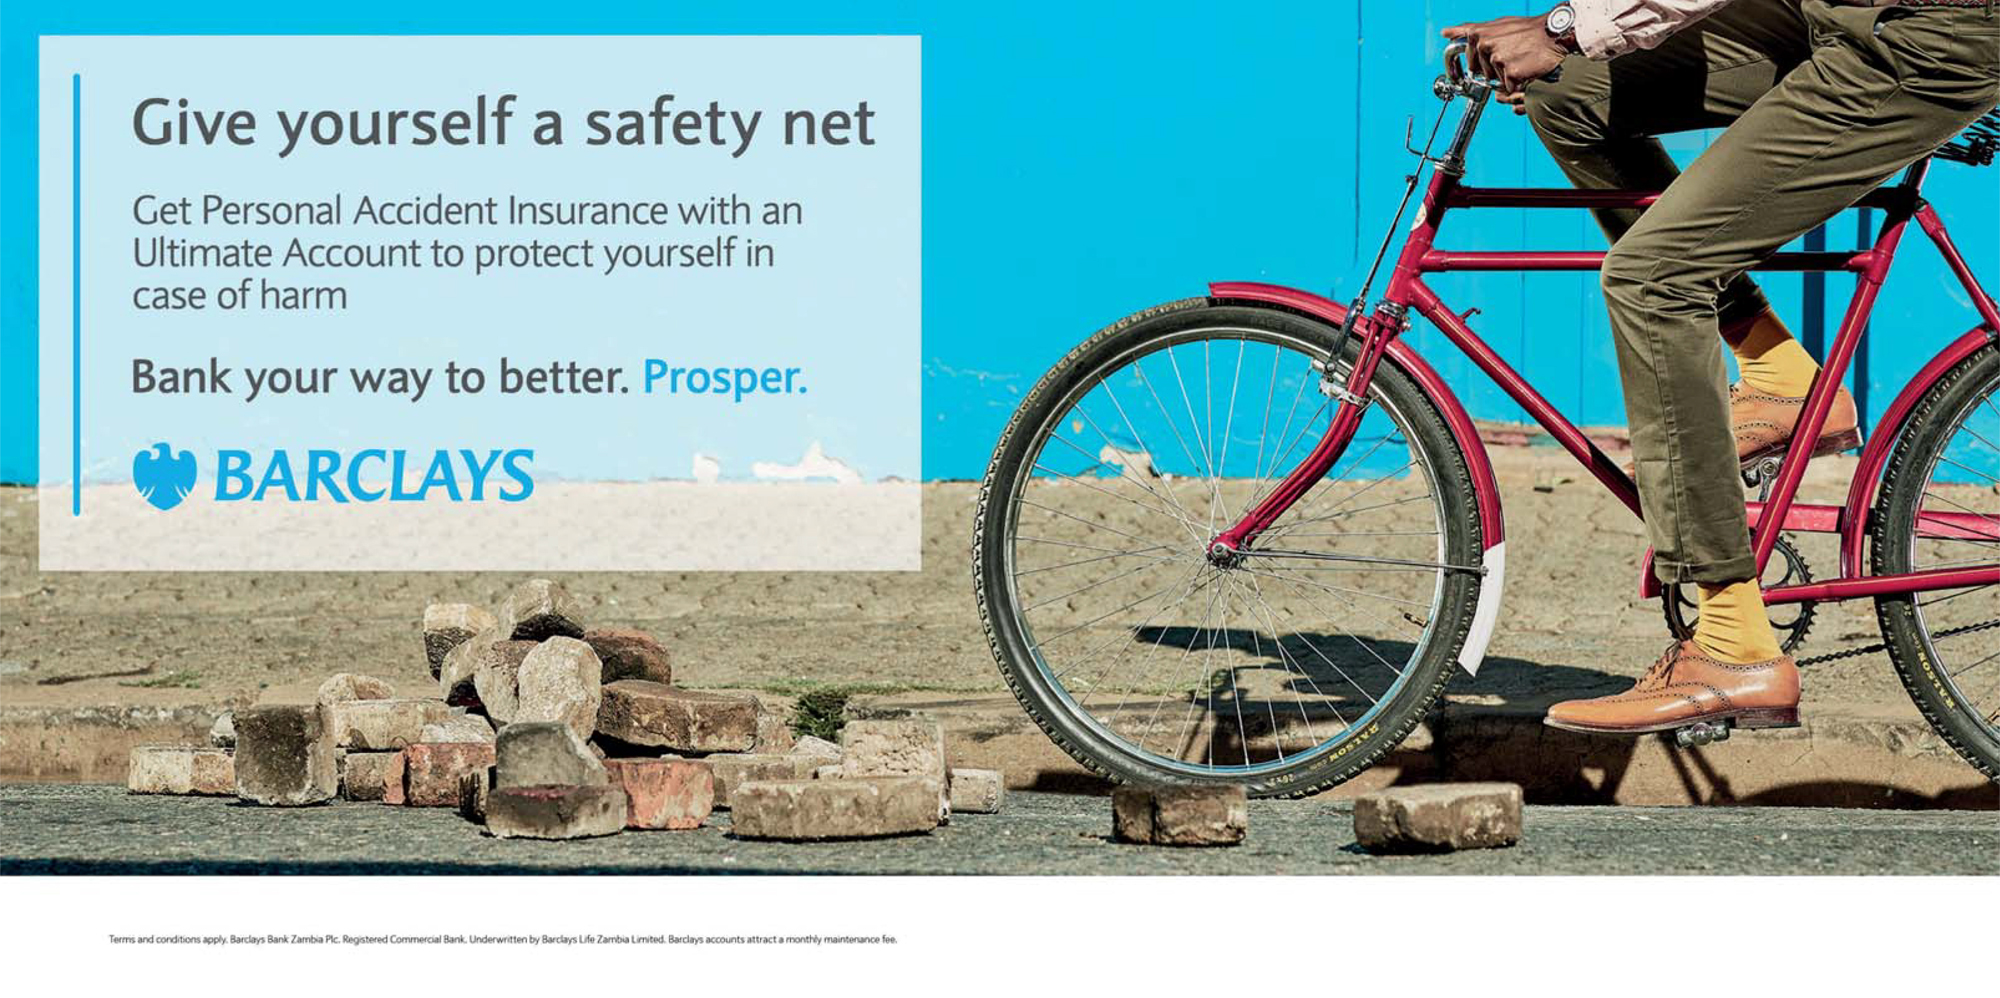 Barclays Personal Banking Campaign Toolkit 26 APRIL-75.jpg